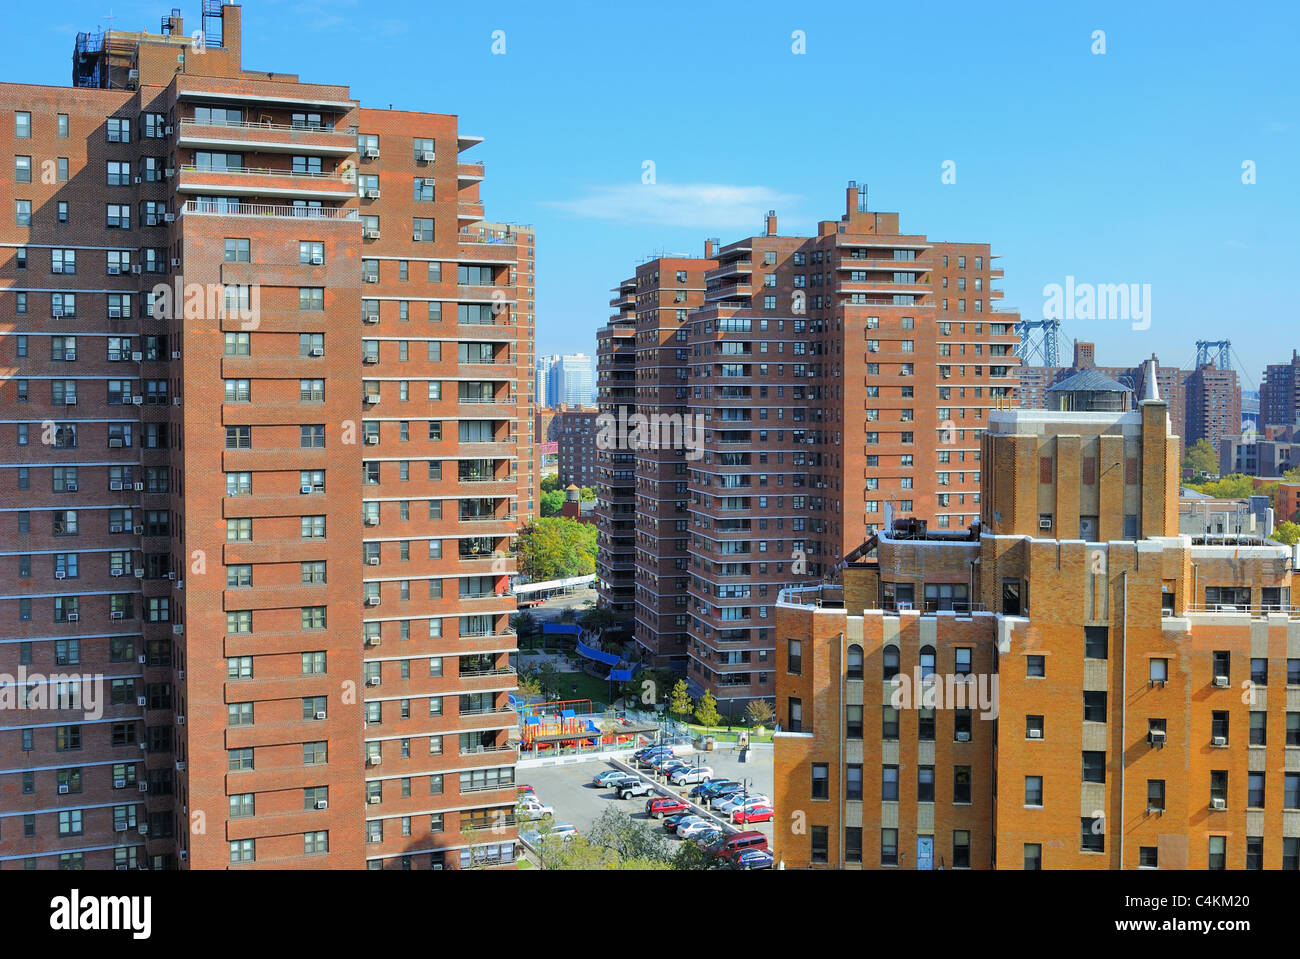 High Rise apartment complexes compose the skyline of the Lower East Side New York City. - Stock Image